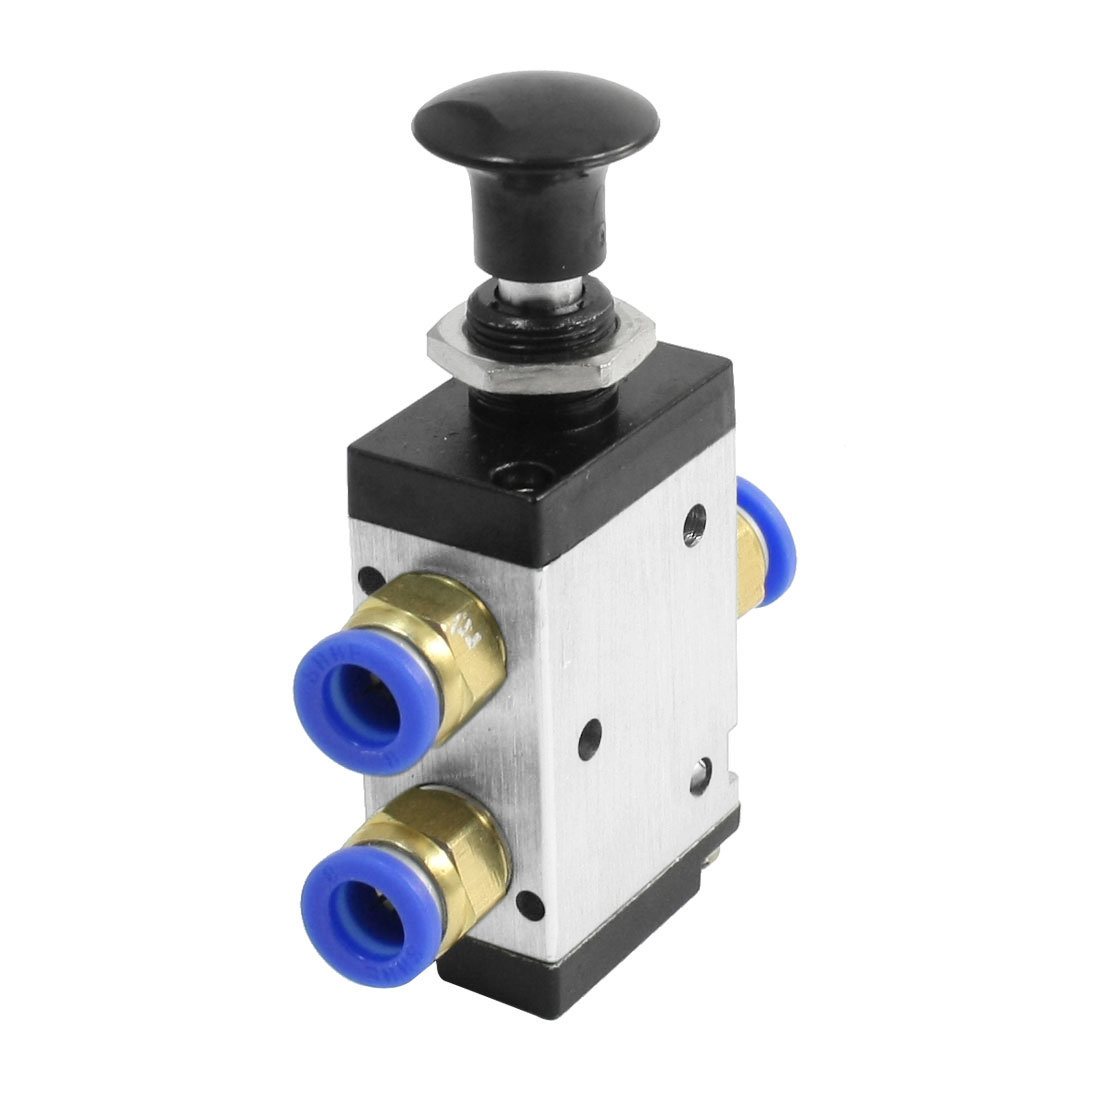 3R210-08 8mm Connector Push-Pull Valve 2 Port One Position 3R series